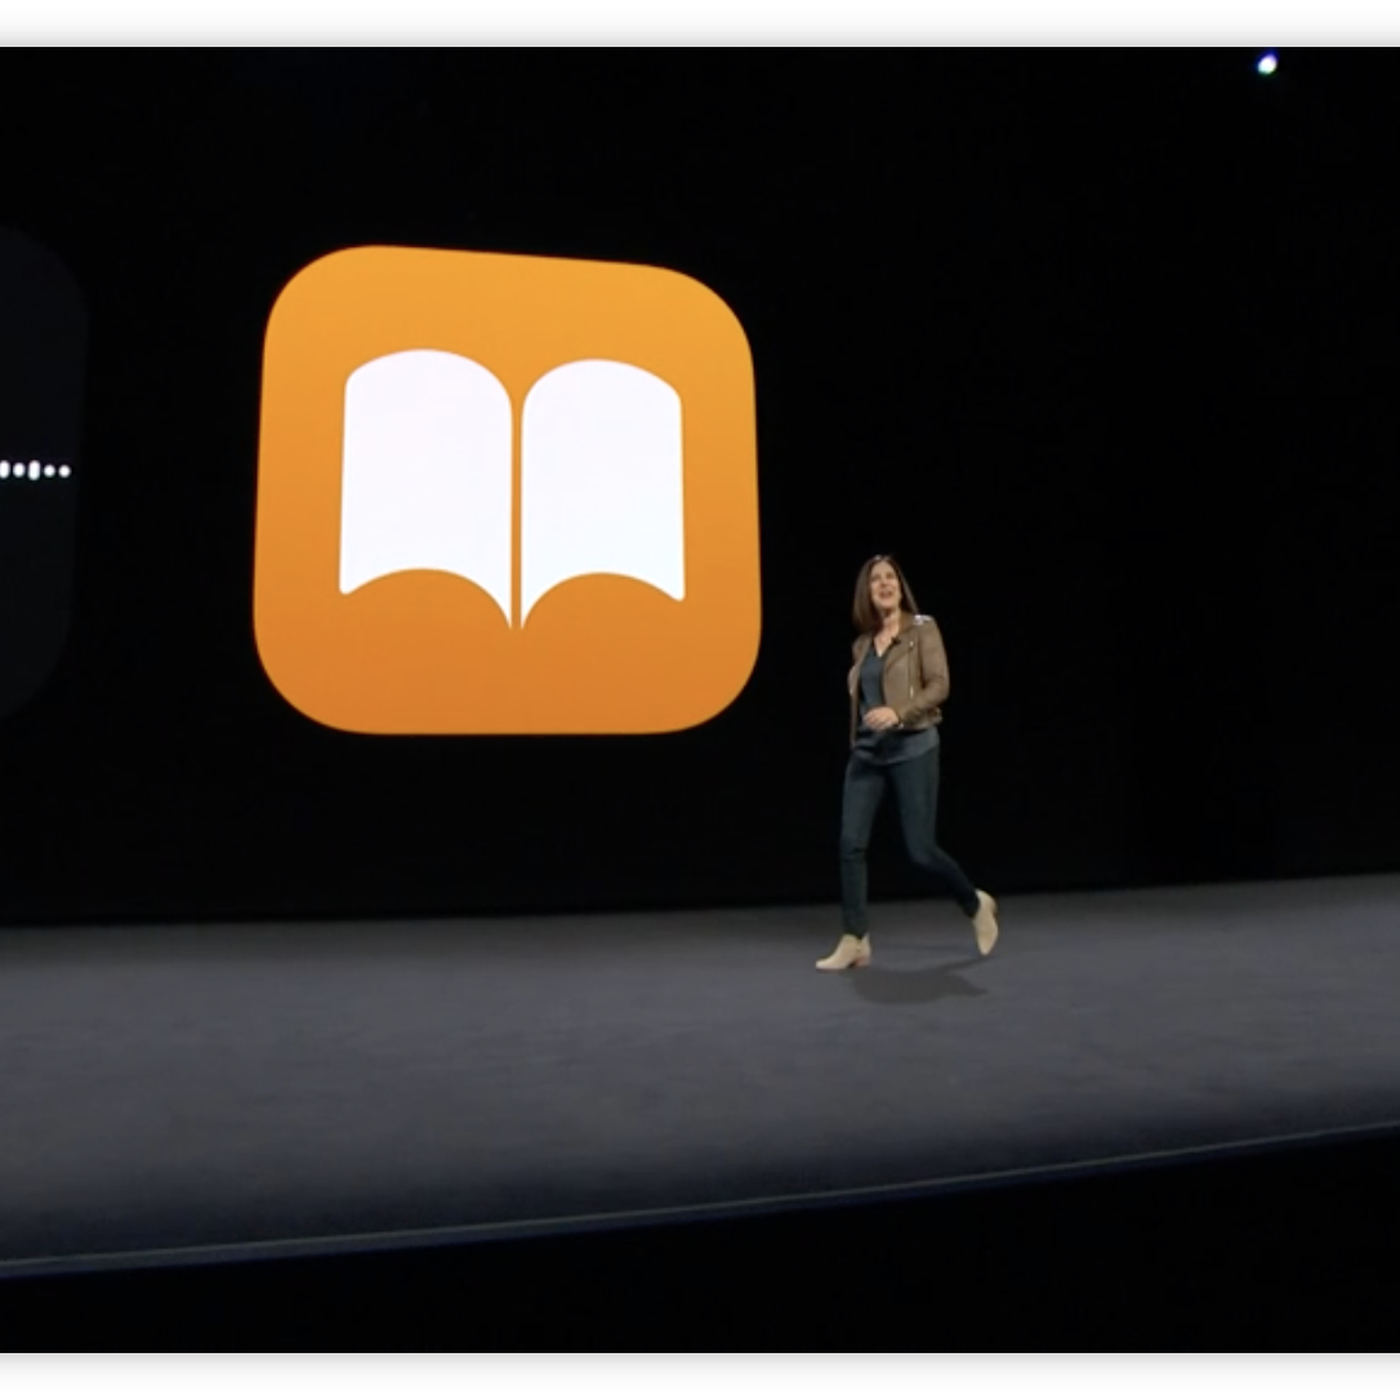 iBooks gets a redesign and new Apple Books branding in iOS